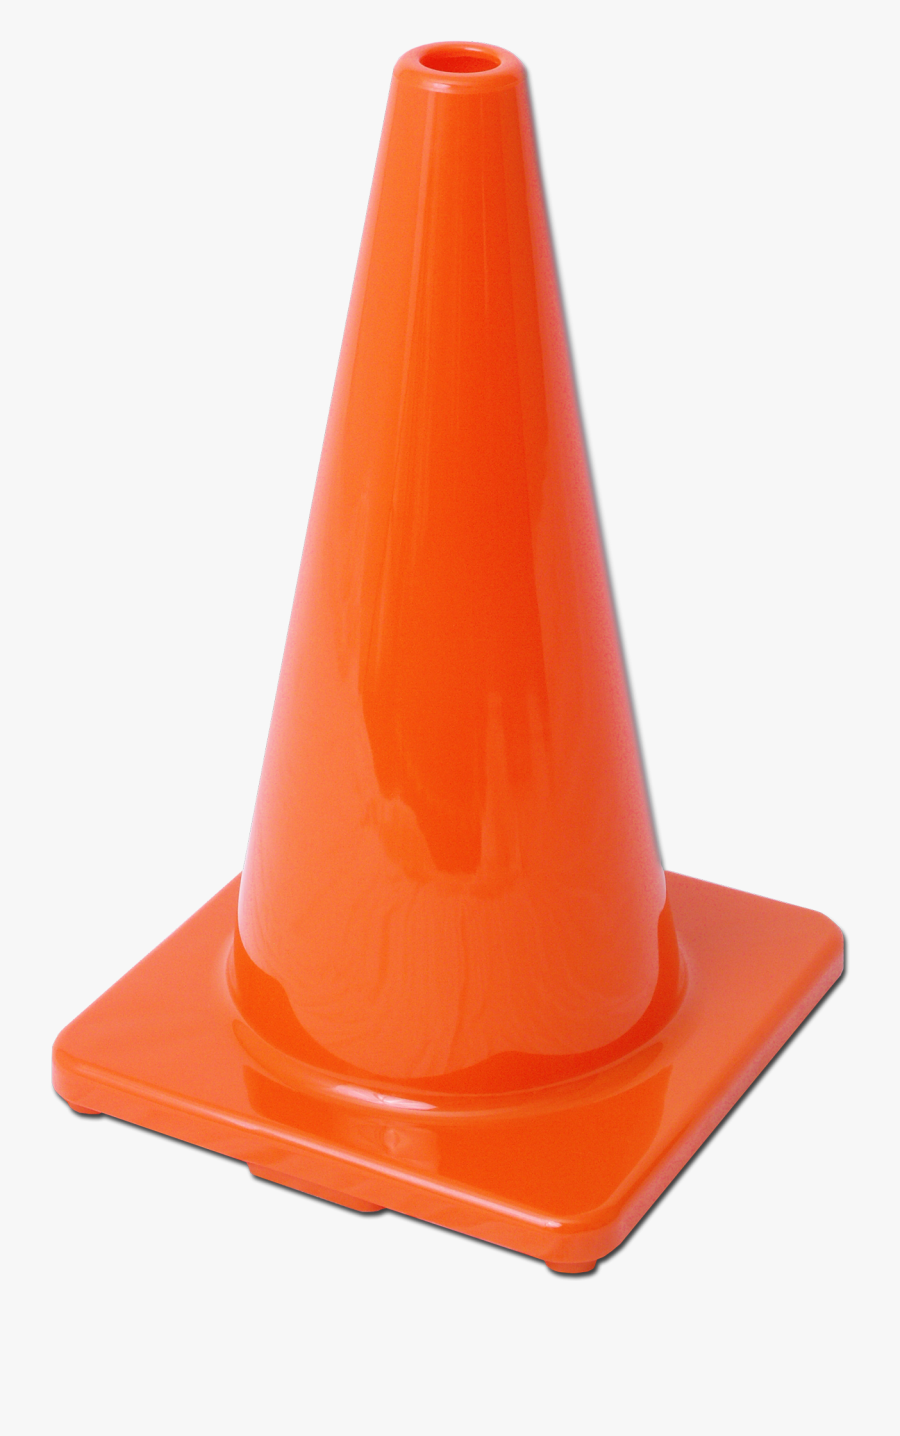 Orange Cone Png - Plastic, Transparent Clipart